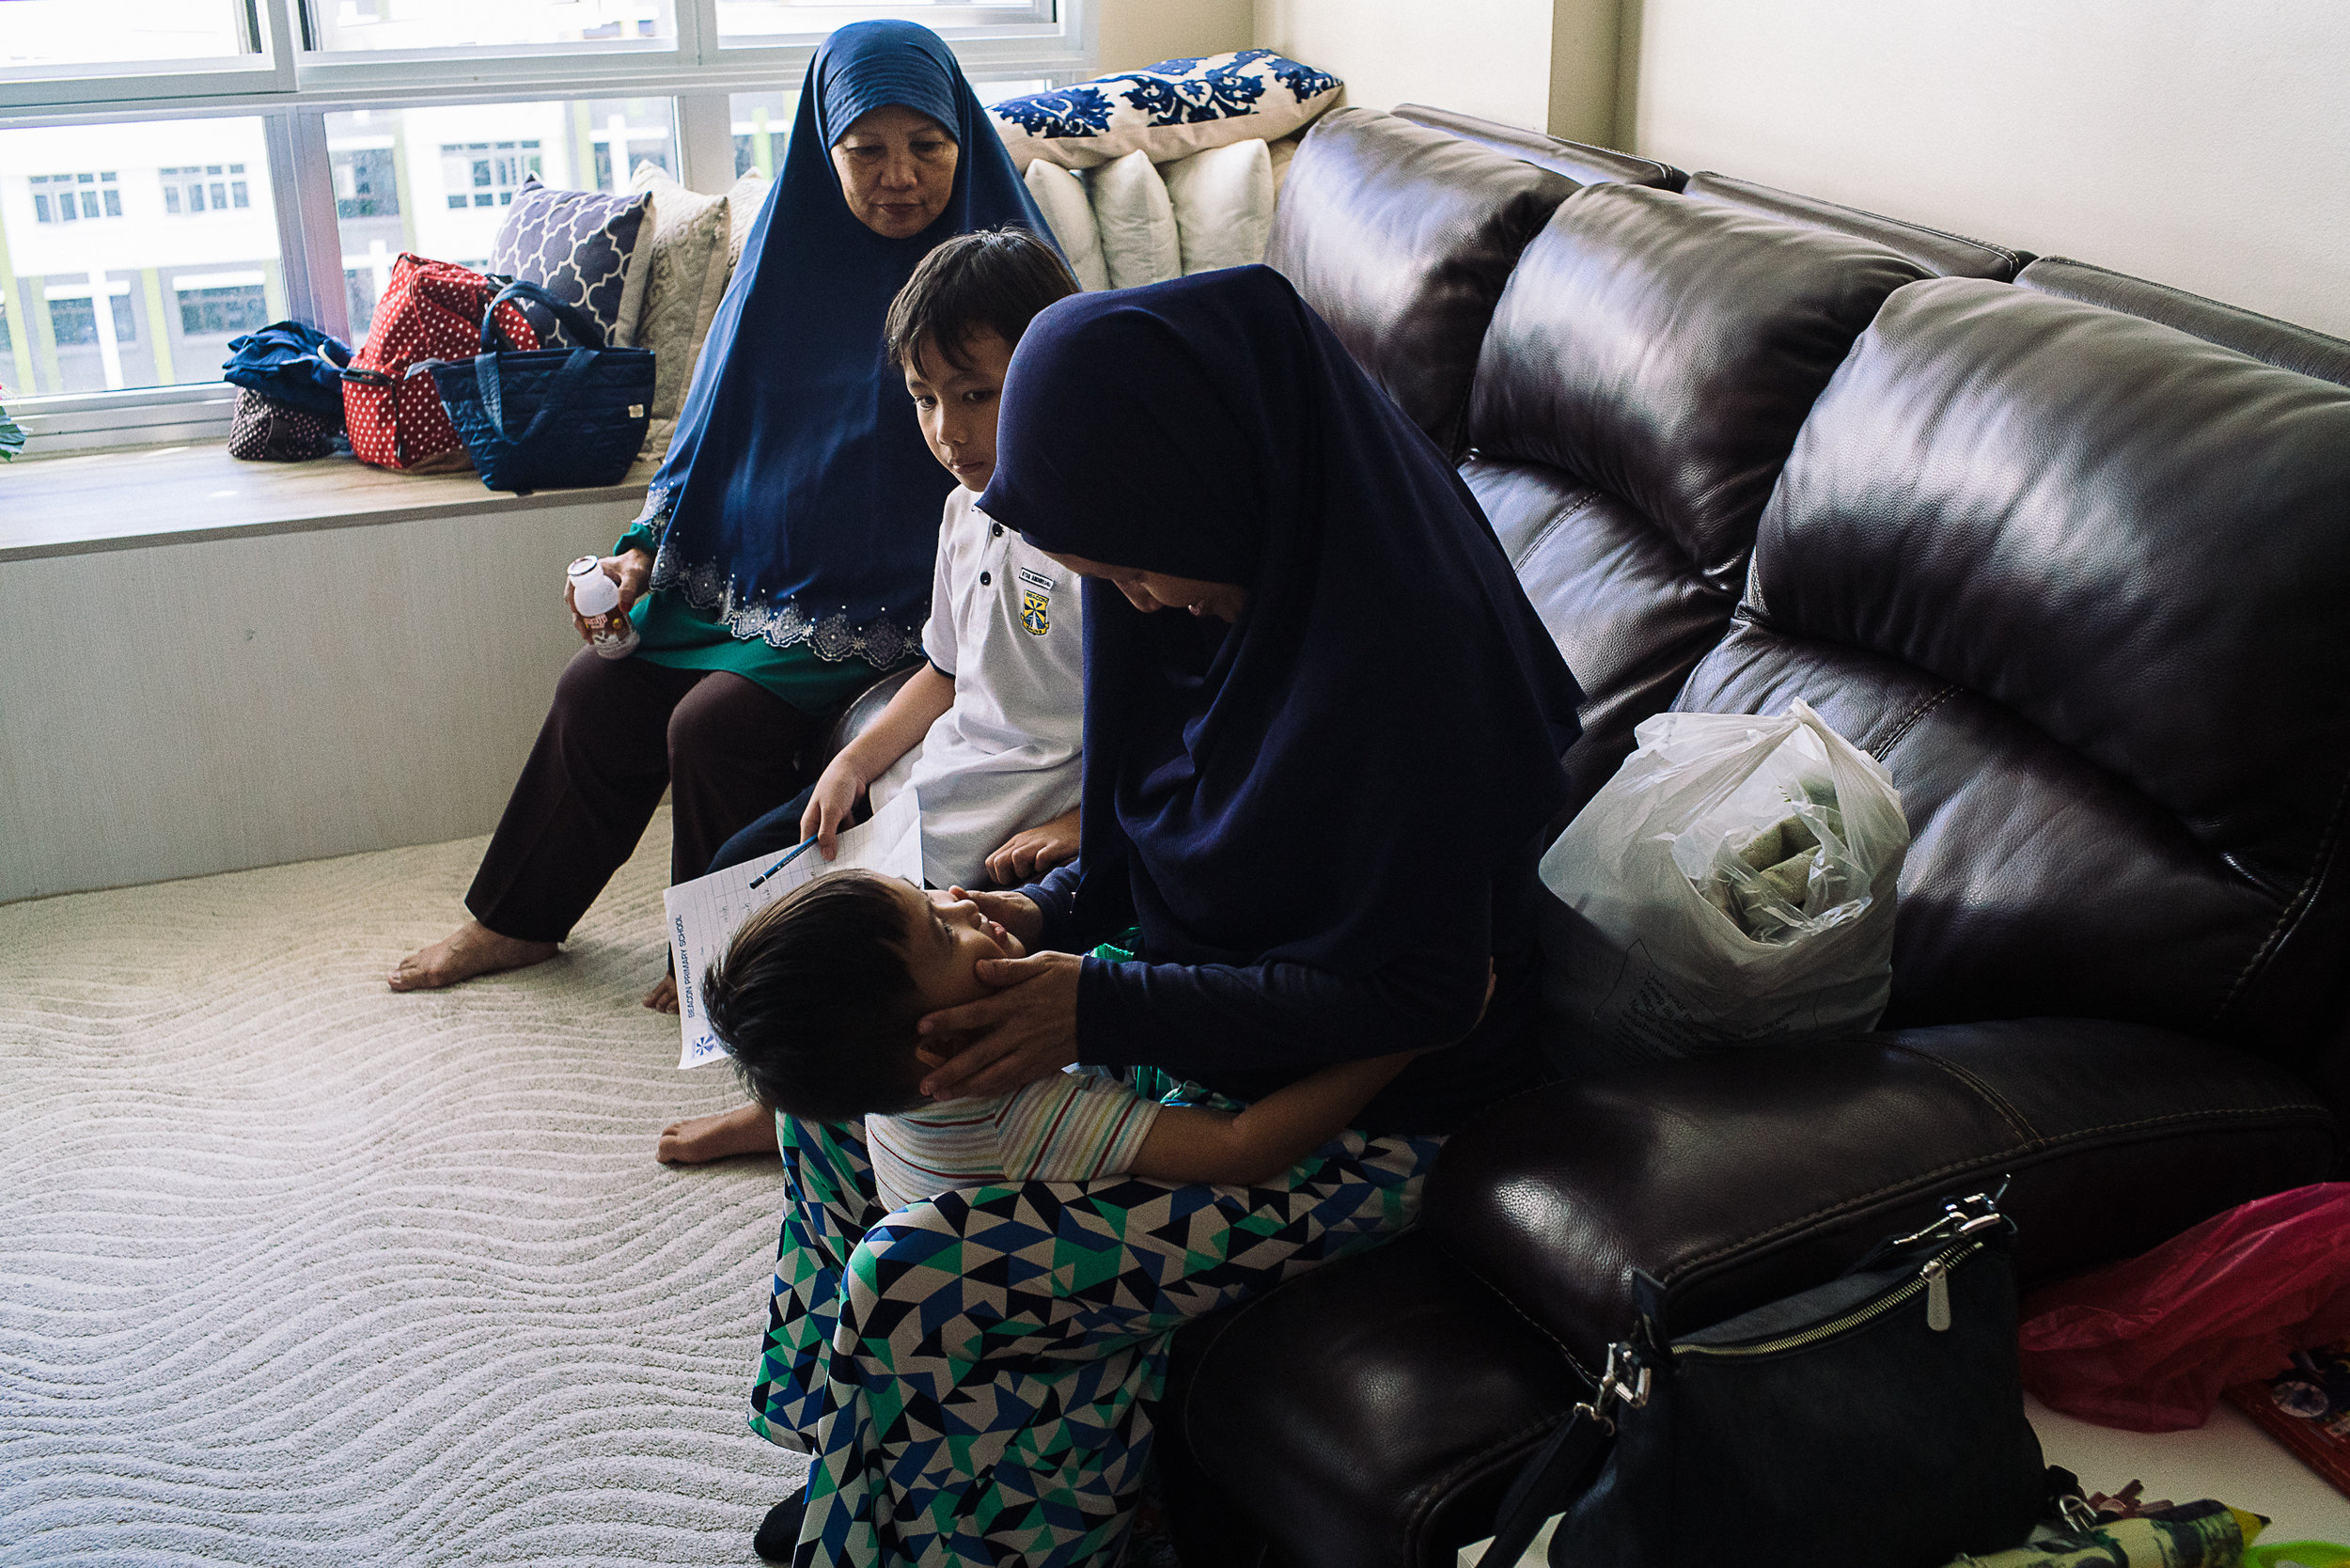 Upon being discharged, Hidayah's youngest son, Ihsan, 4 years old, came running in to hug his mother and asked where is the baby.  Hana continues to be warded in the NICU.